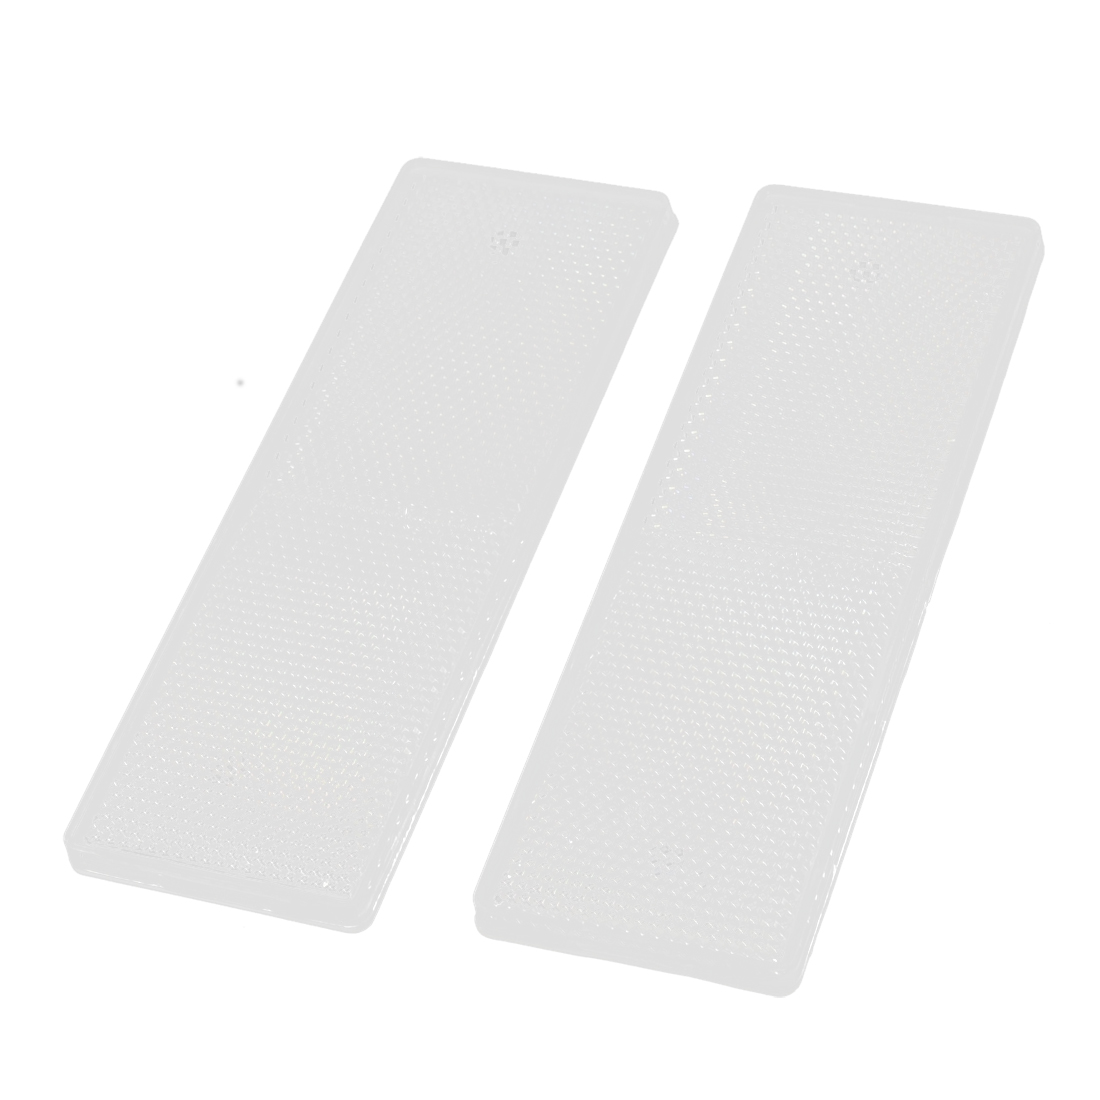 Plastic Rectangle Reflective Warning Reflector White 2PCS for Vehicle Safety